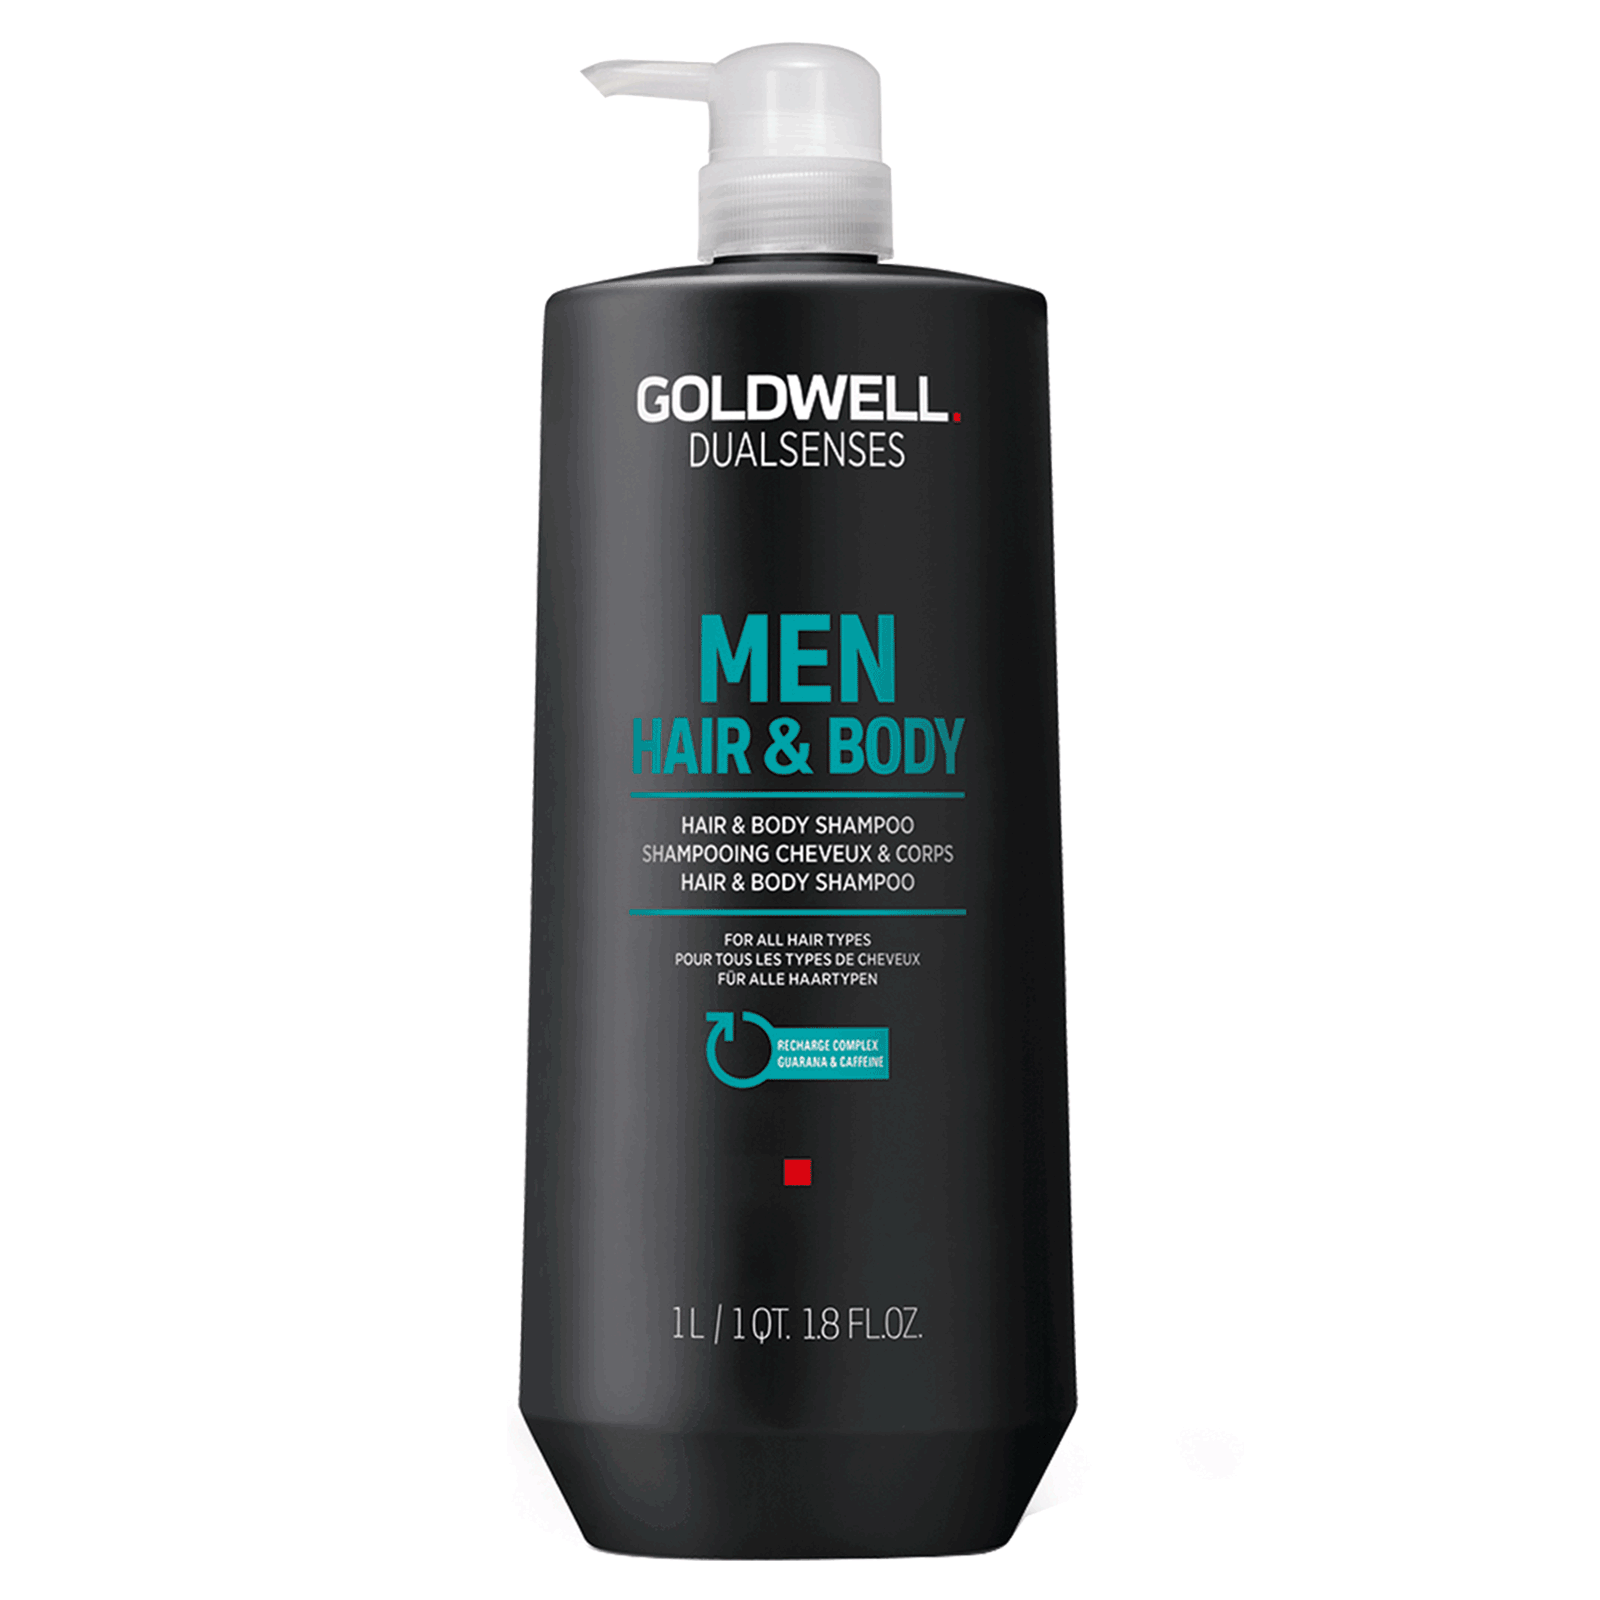 Dualsenses Men - Hair & Body Shampoo